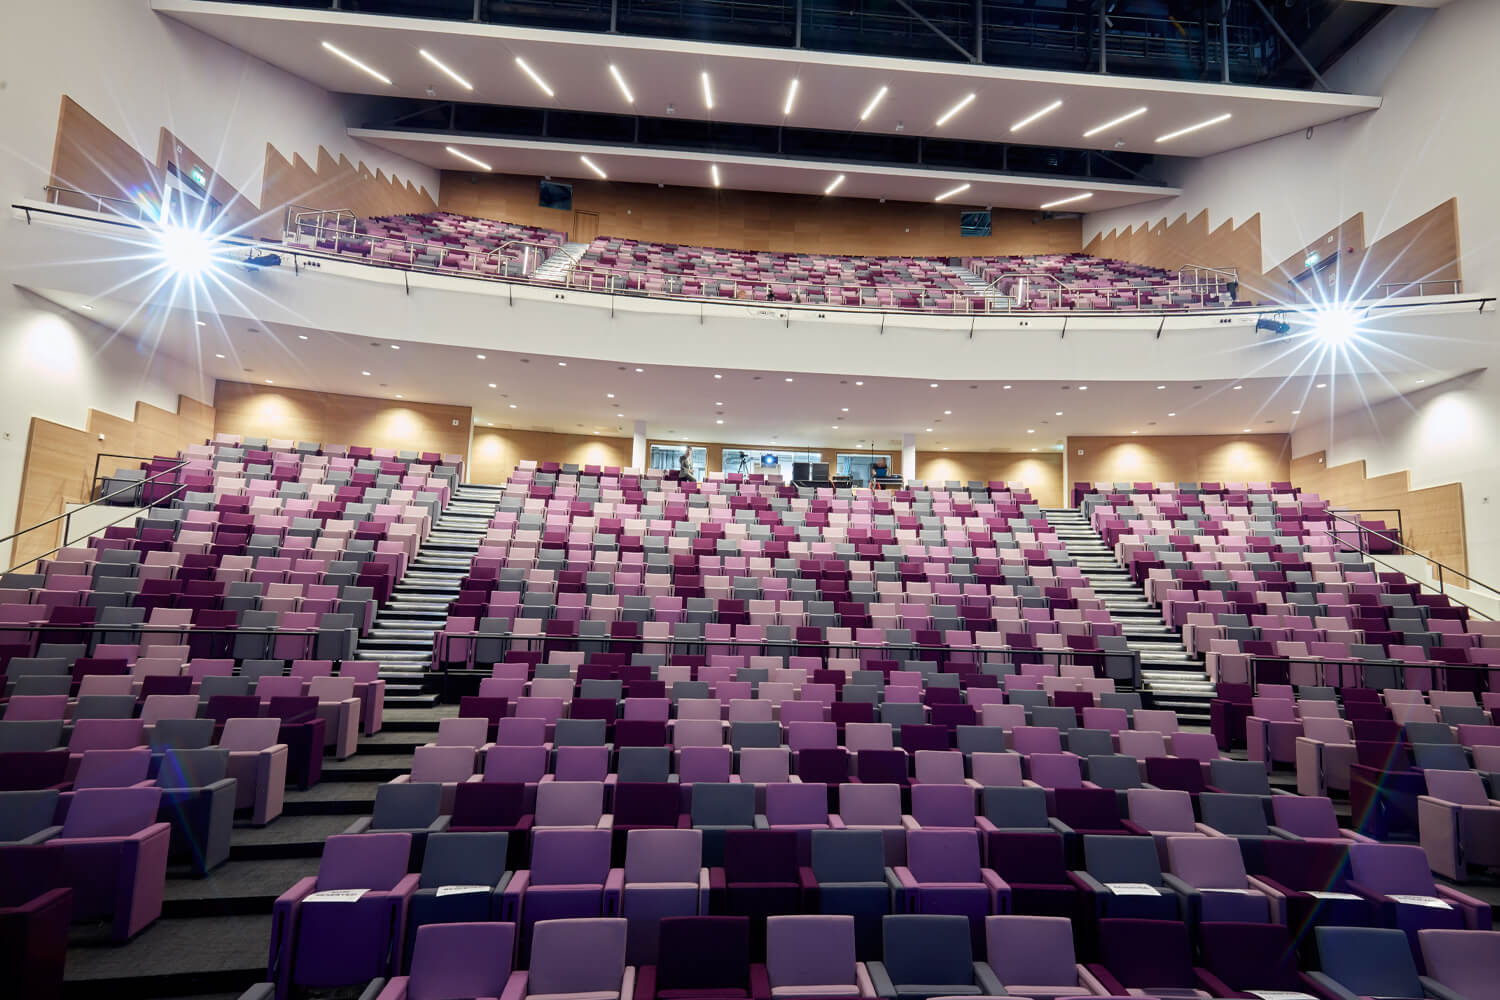 purple seating at icc wales